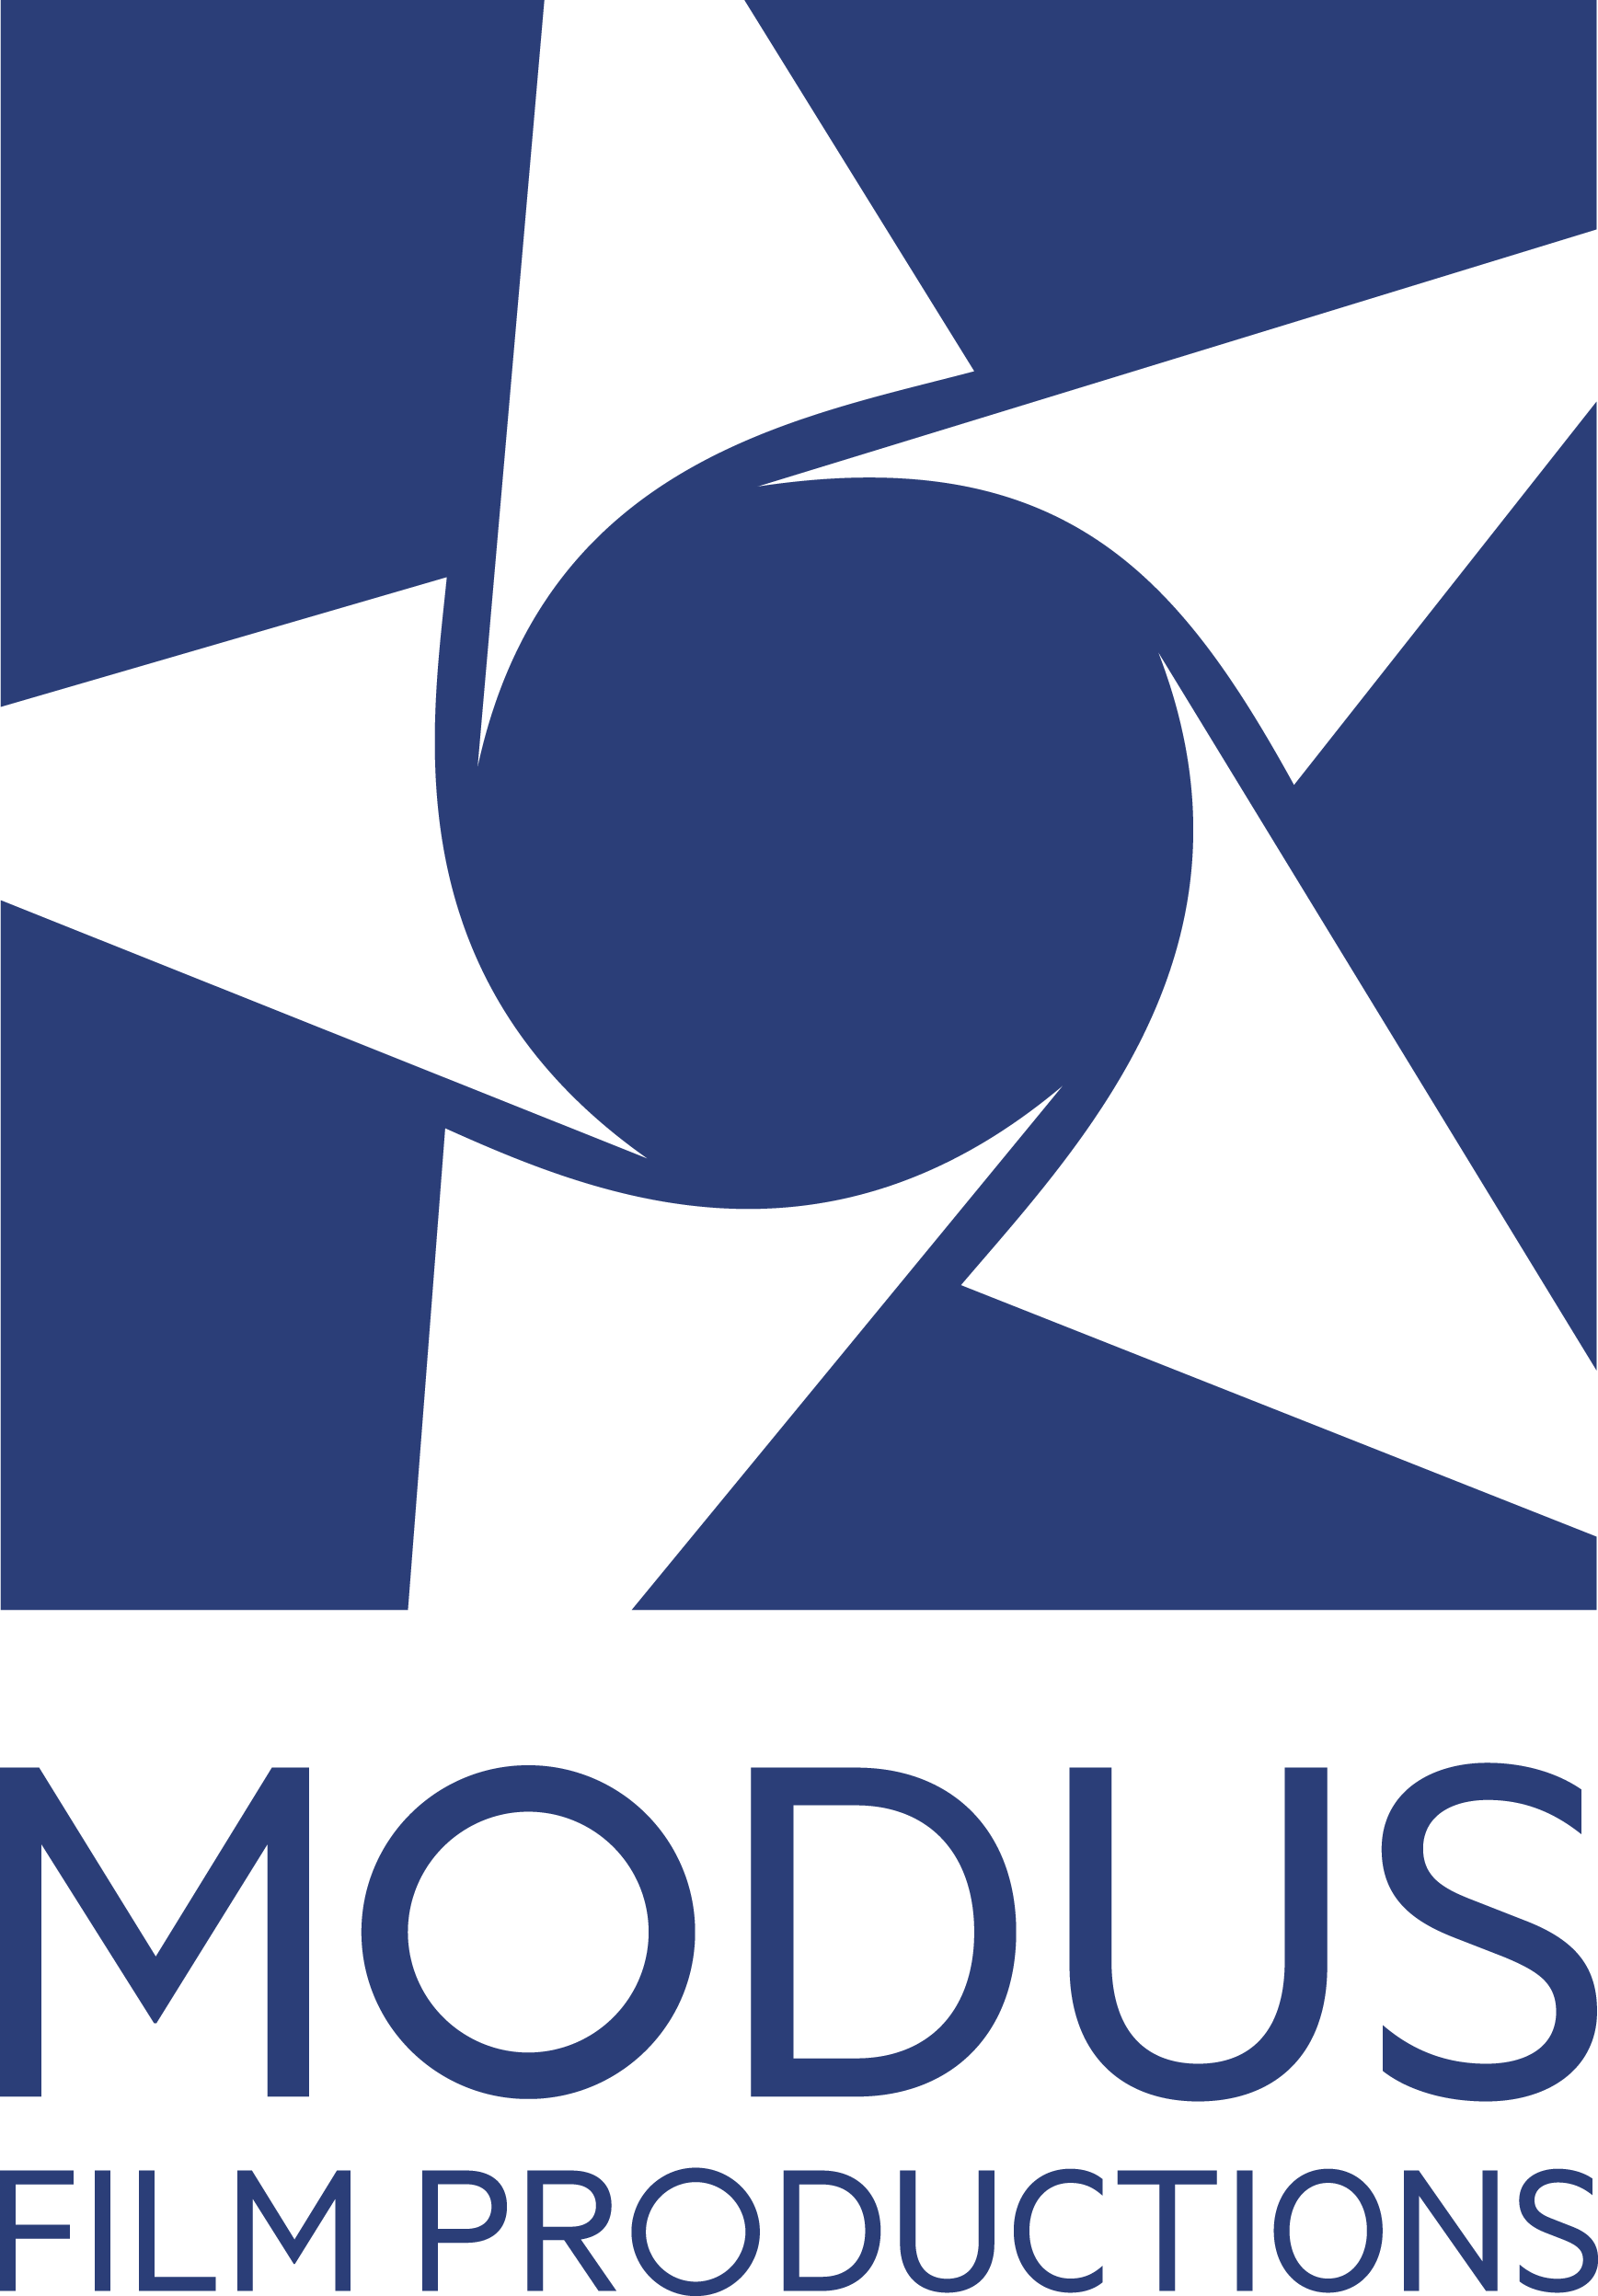 Modus Film Production Ltd